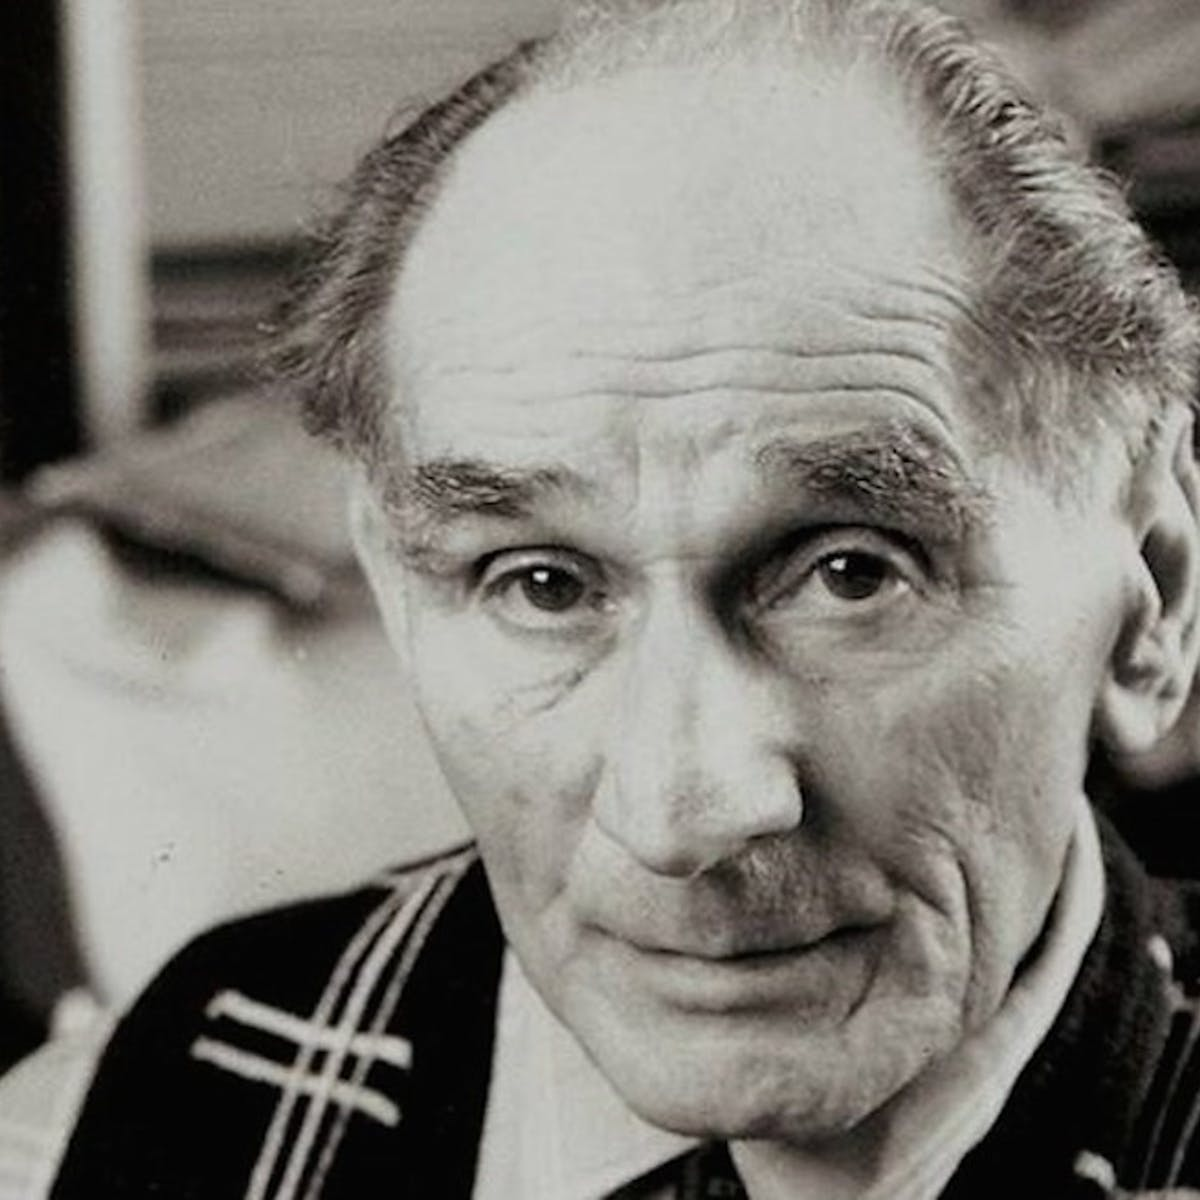 The story of an Englishman in Auschwitz